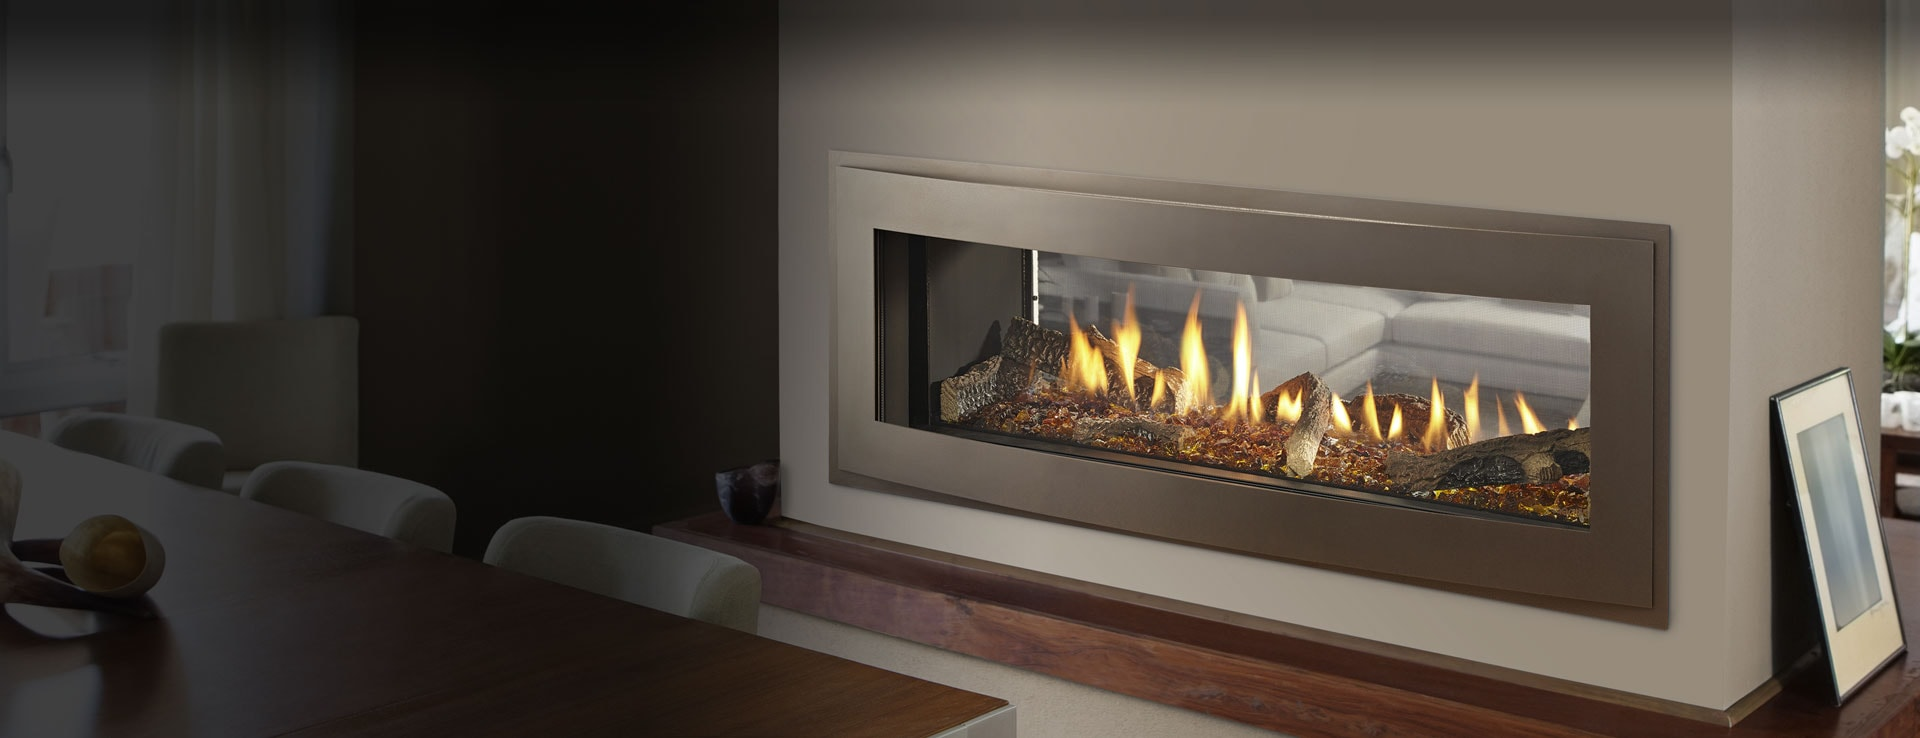 crave see through direct vent gas fireplace heatilator